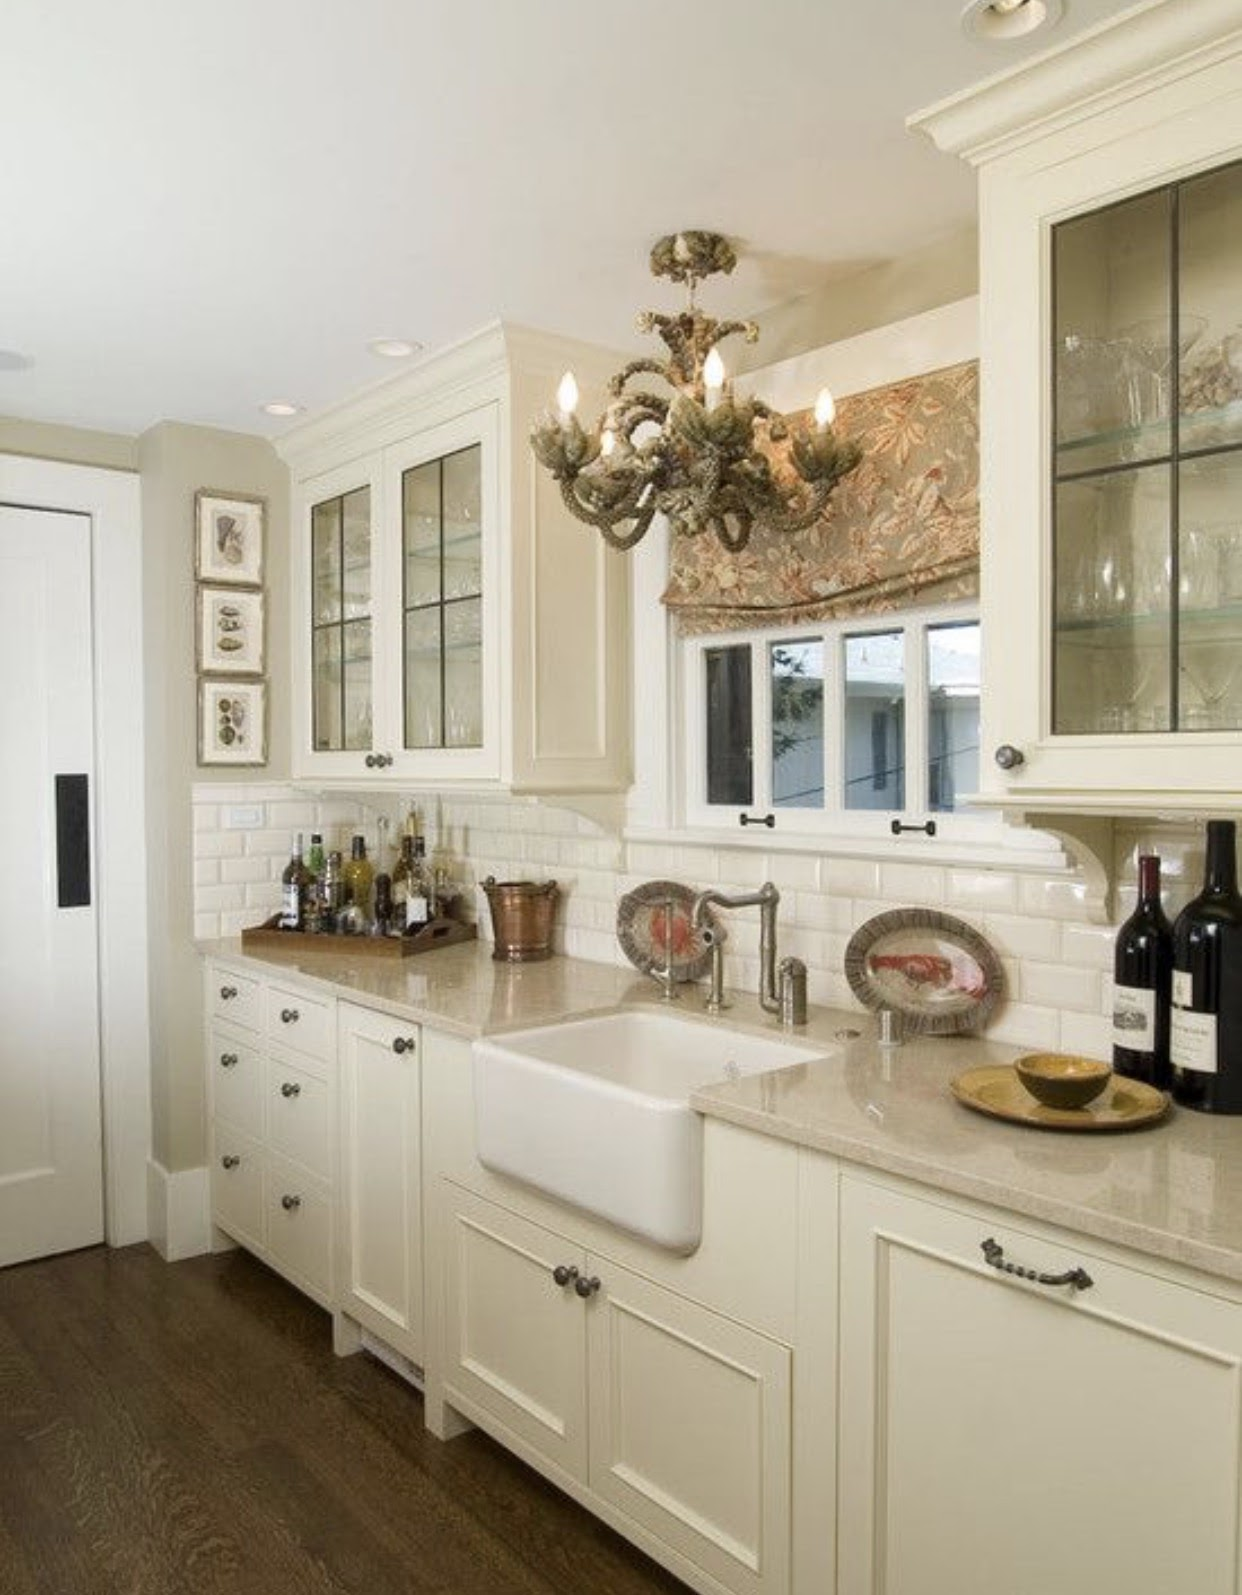 Kitchen Cabinet Painting Denver - Painting Kitchen Cabinets and ...